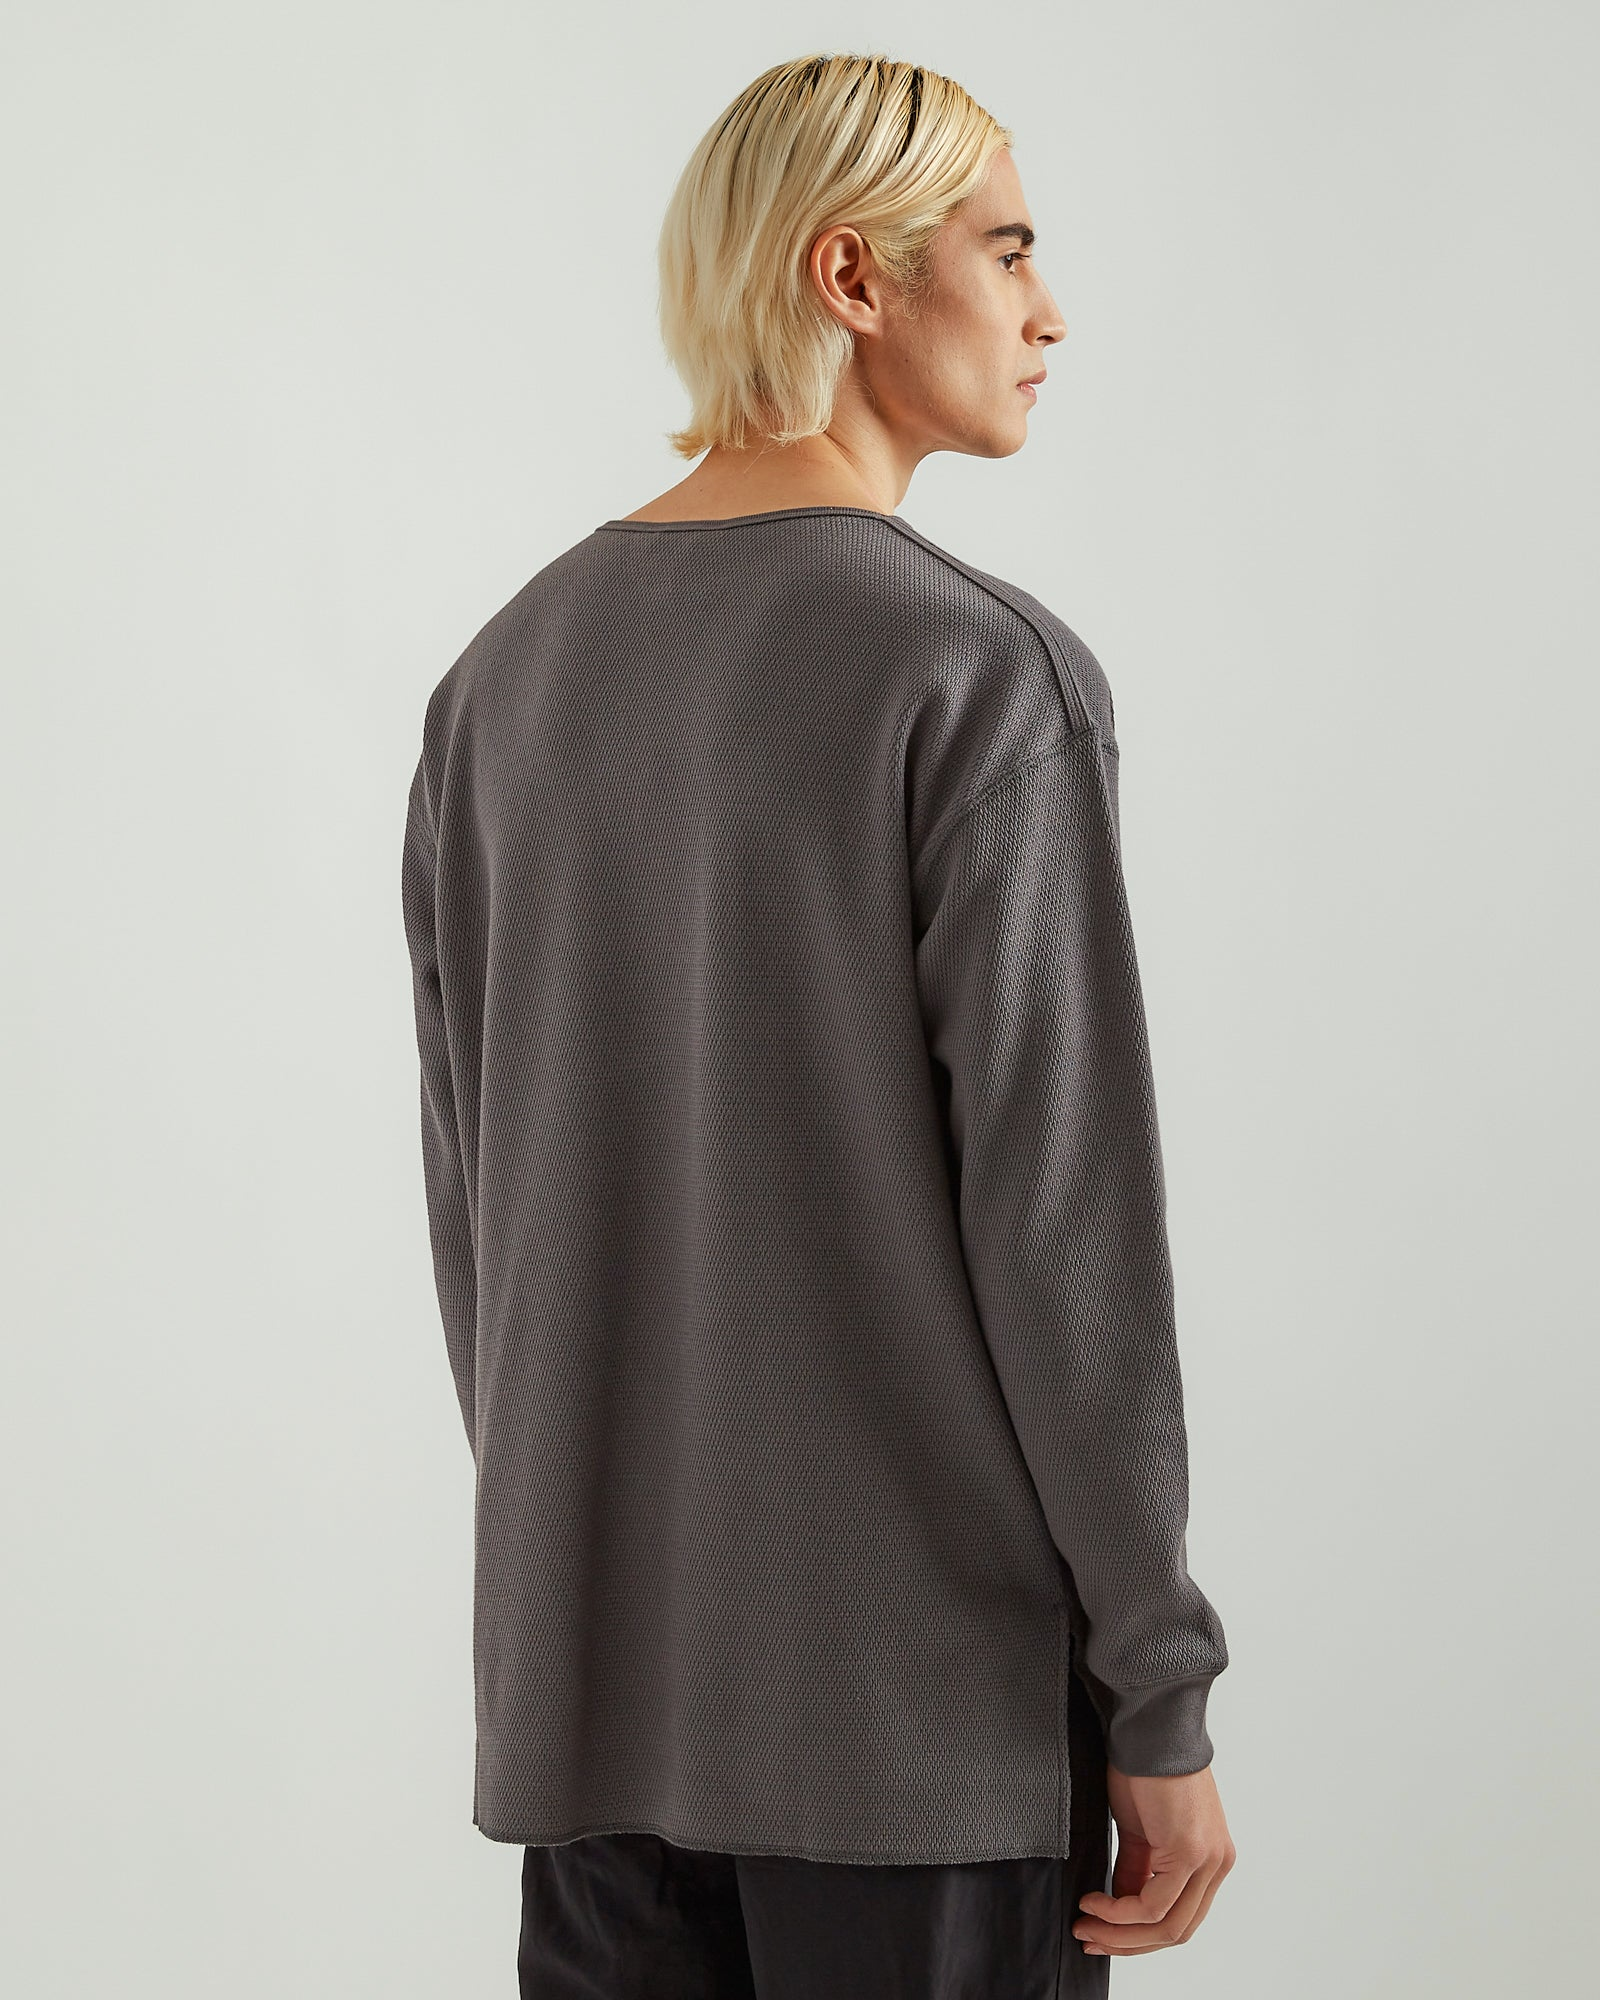 Thermal Longsleeve in Charcoal